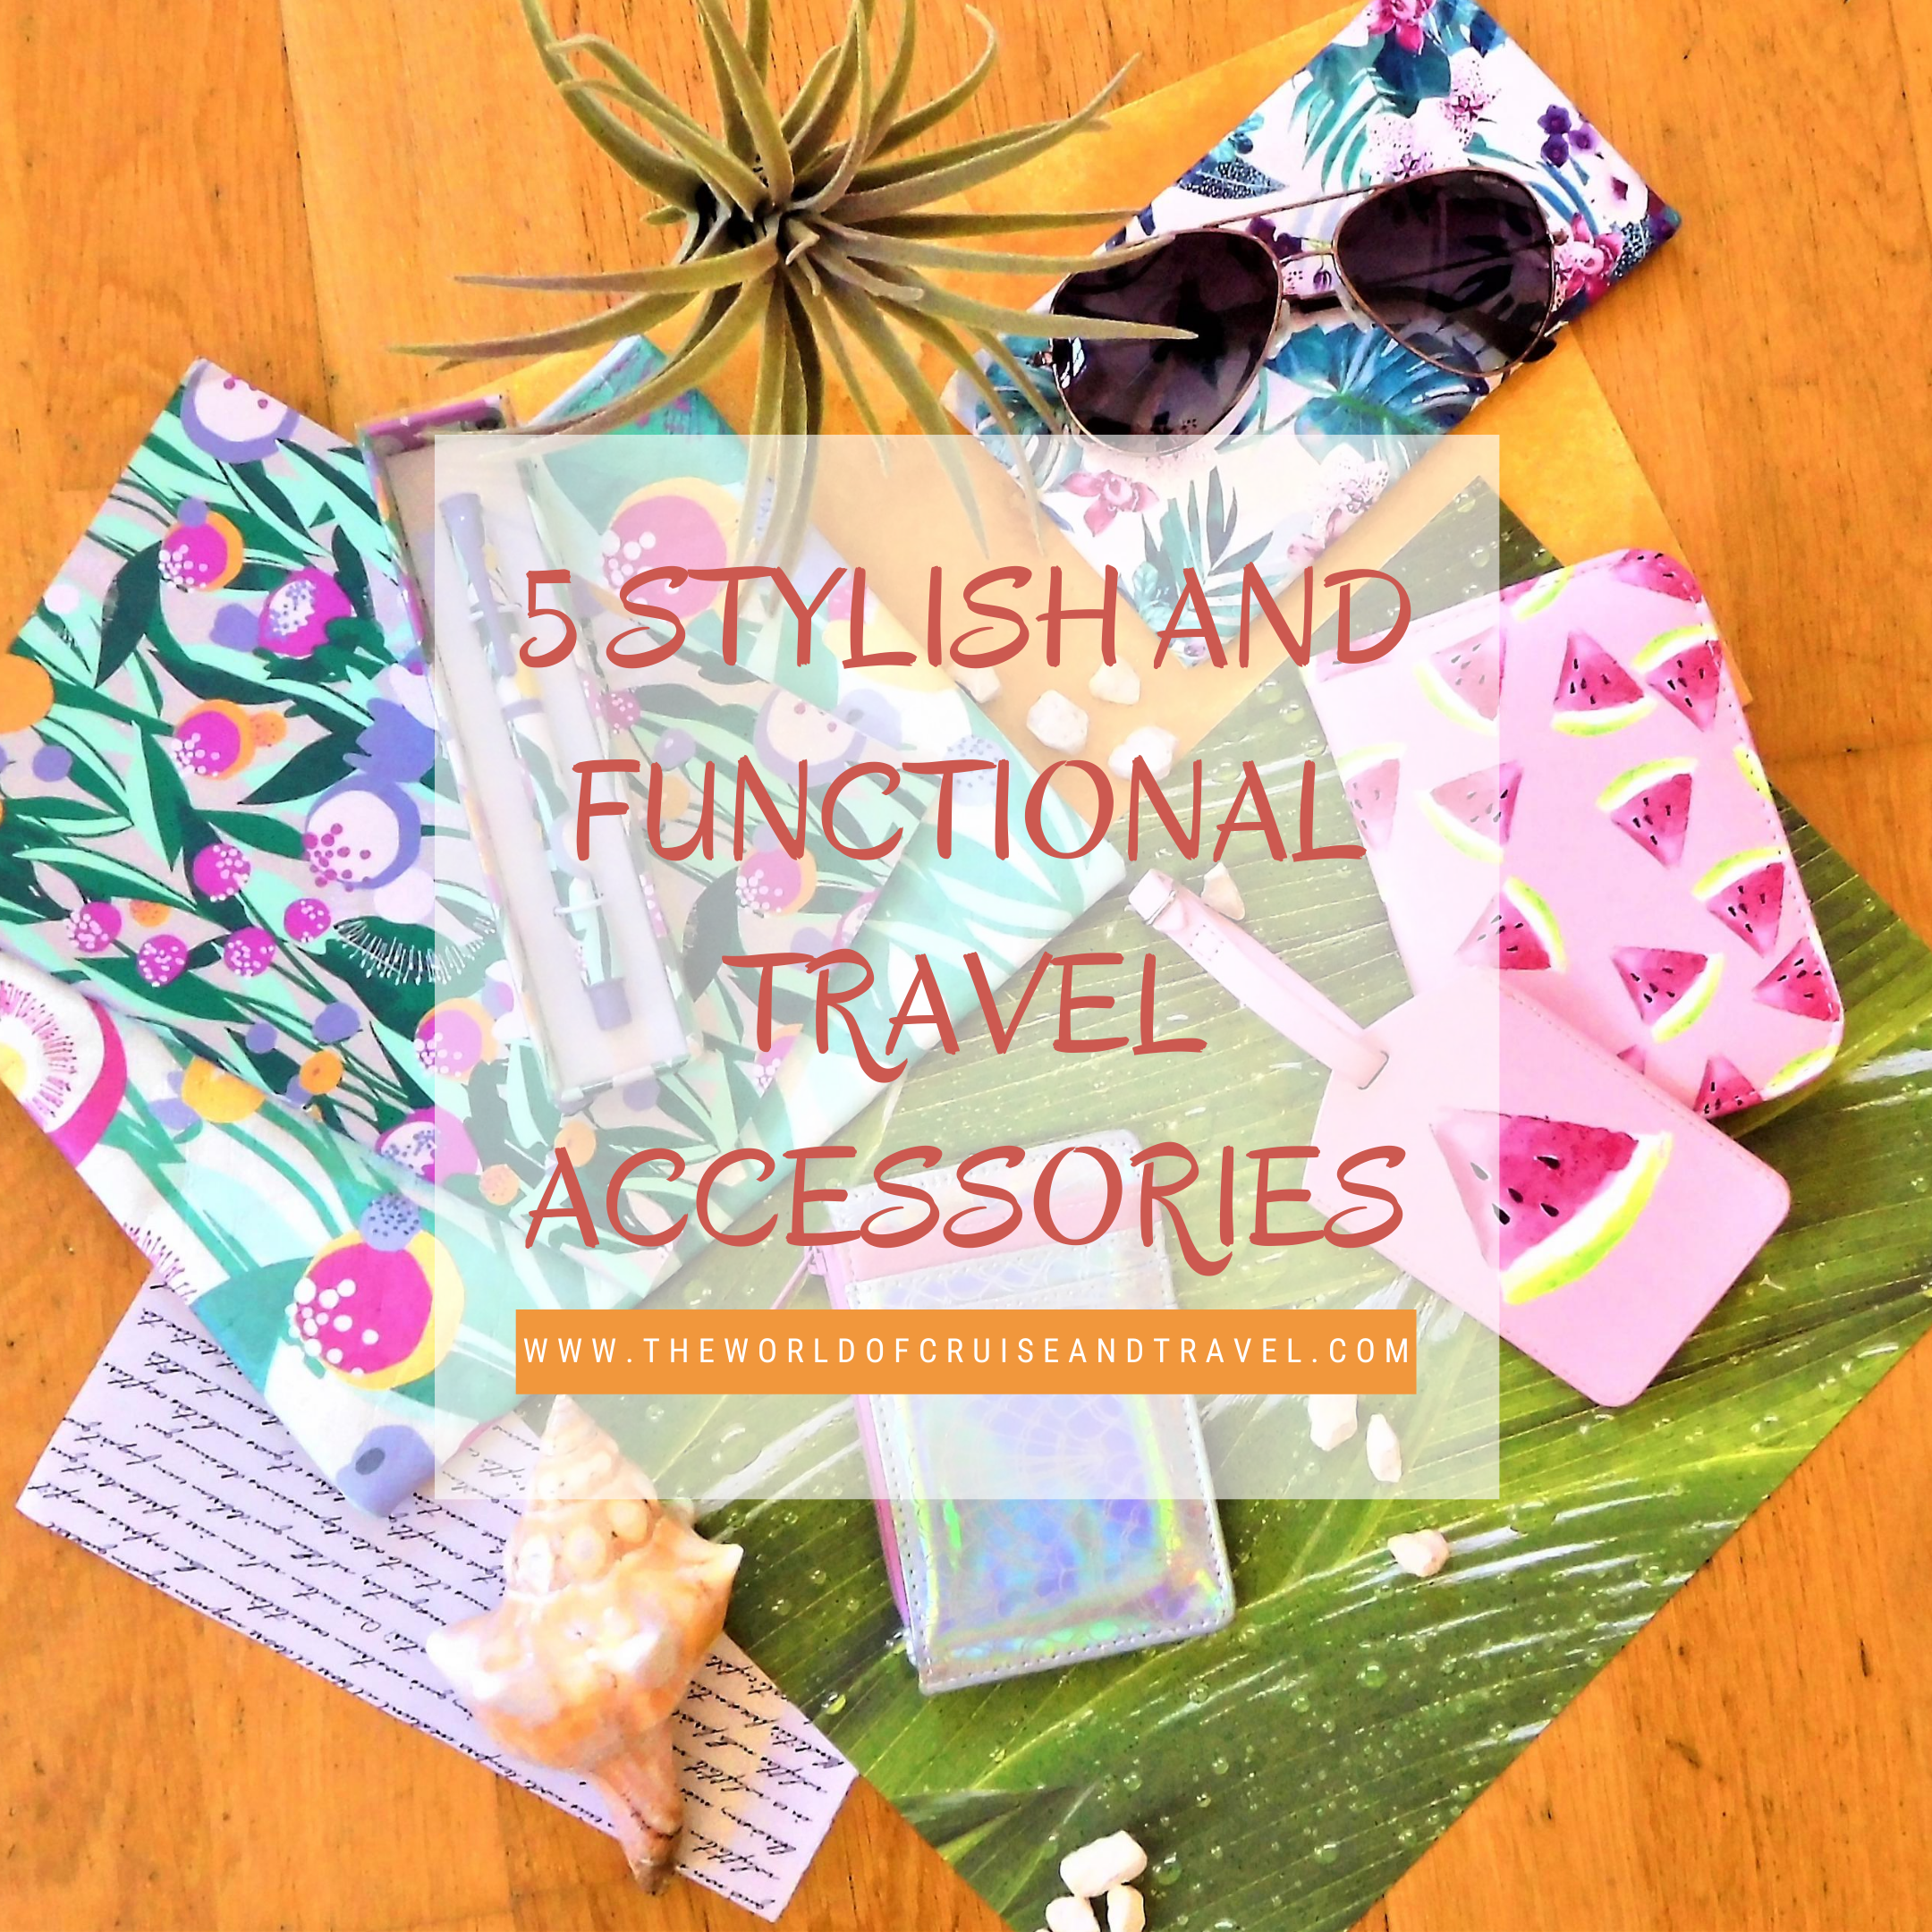 5 Stylish And Functional Travel Accessories